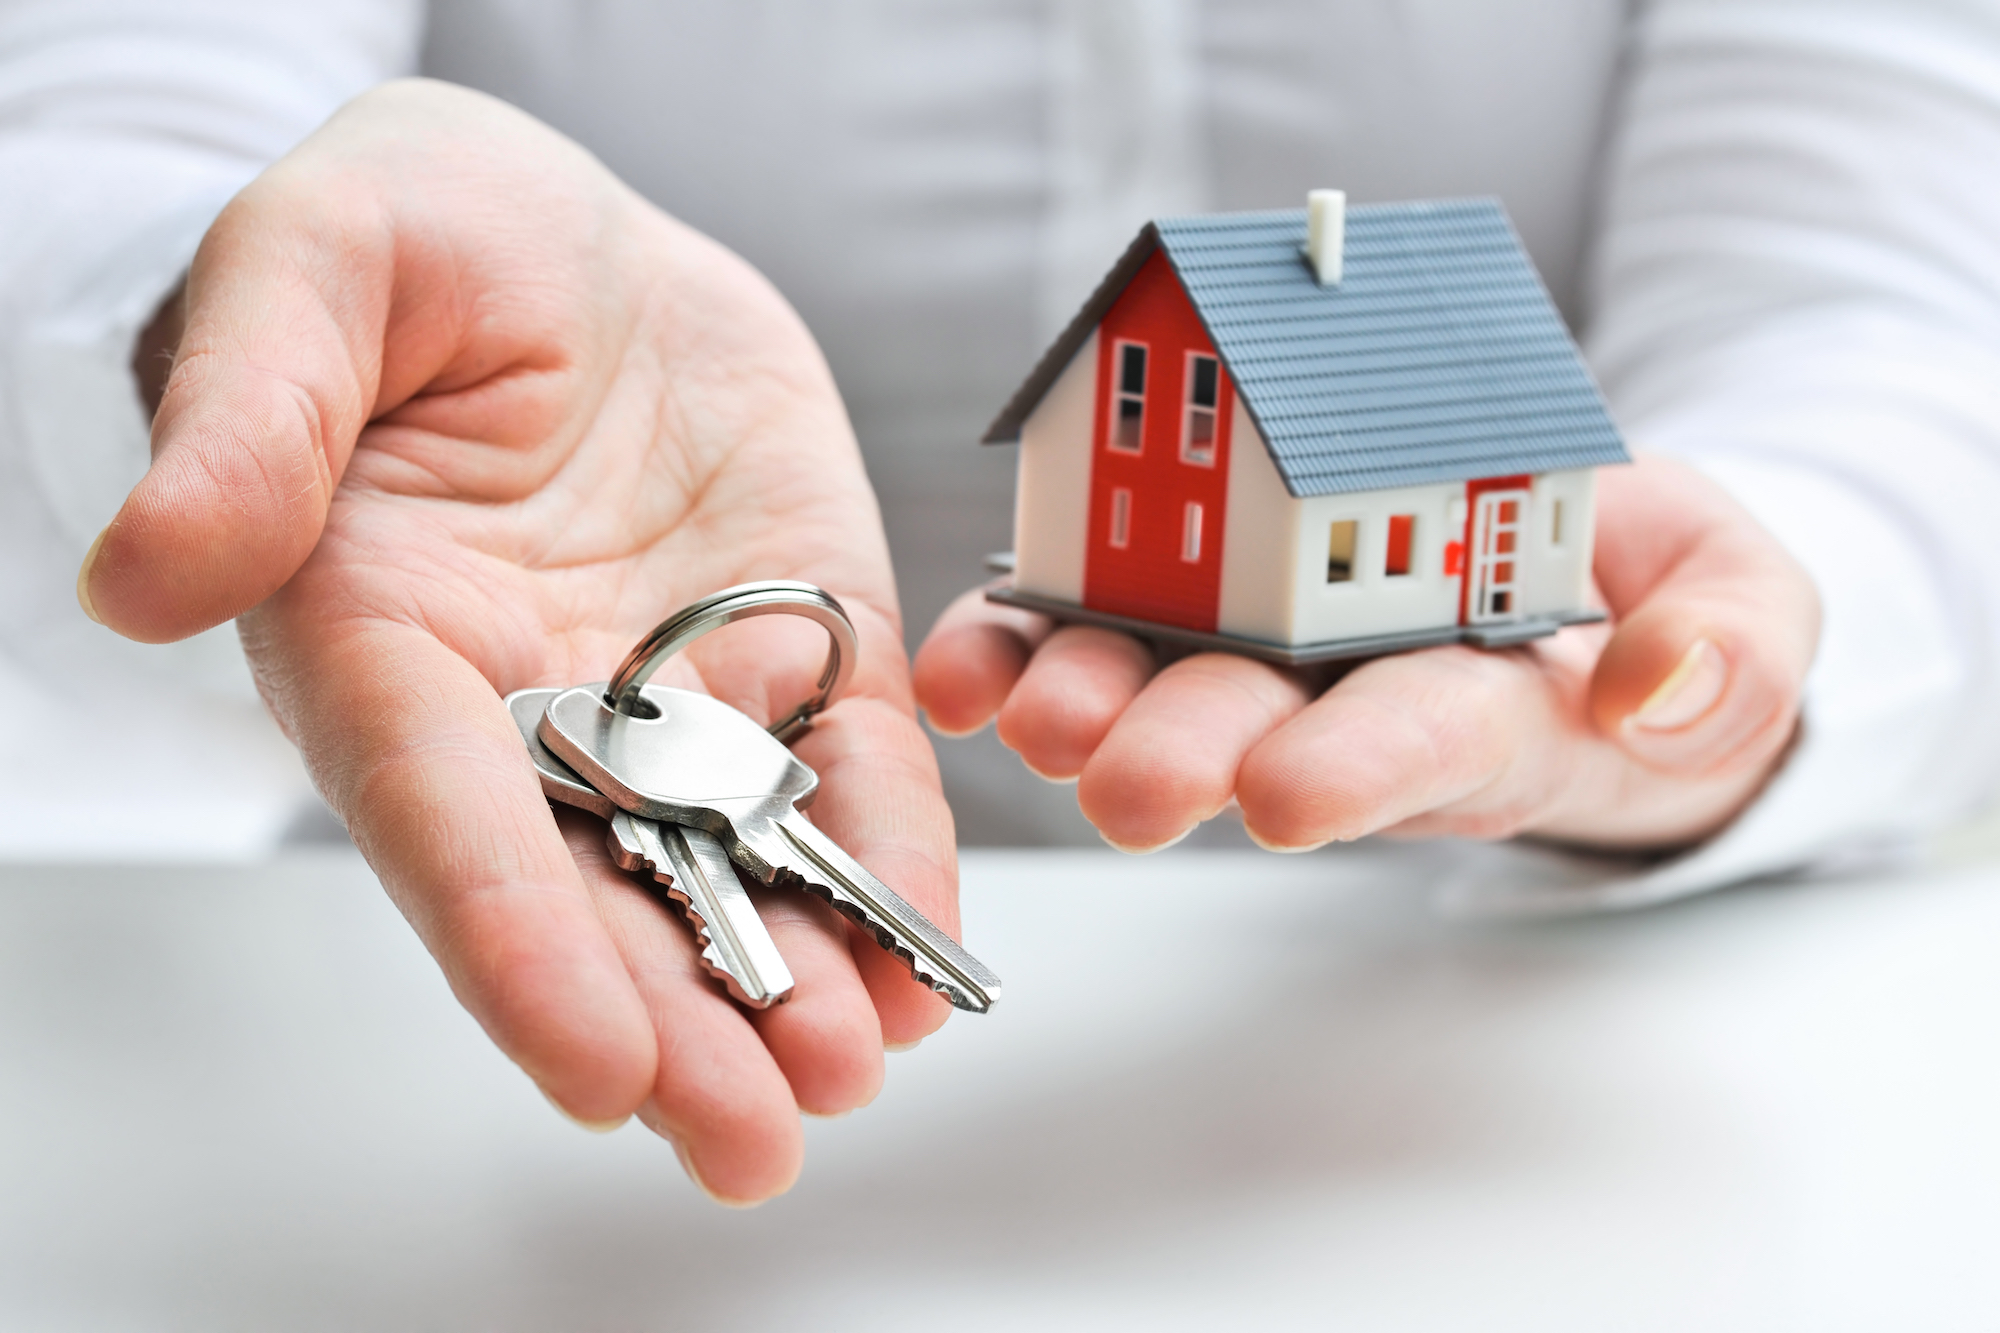 Person holding a house and keys.jpg